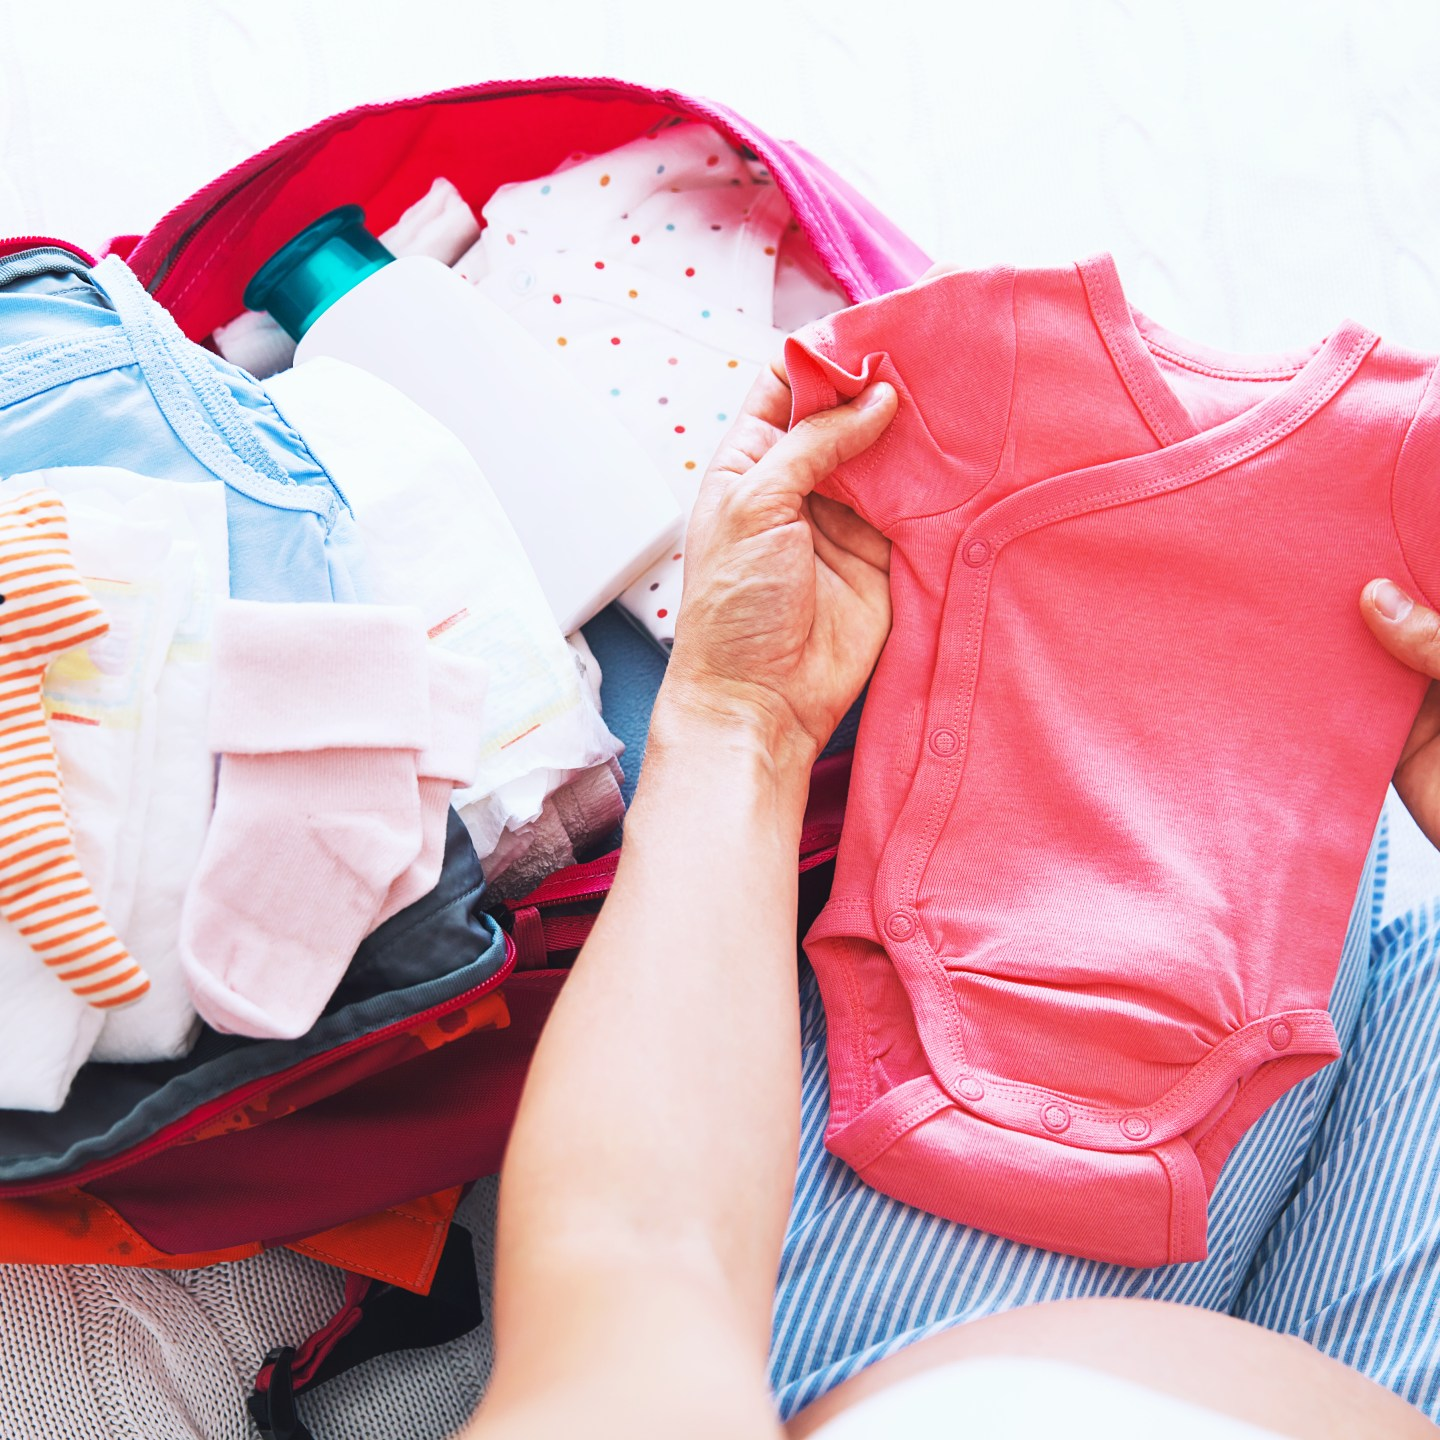 Checklist – Packing List For Travelling With Your Baby